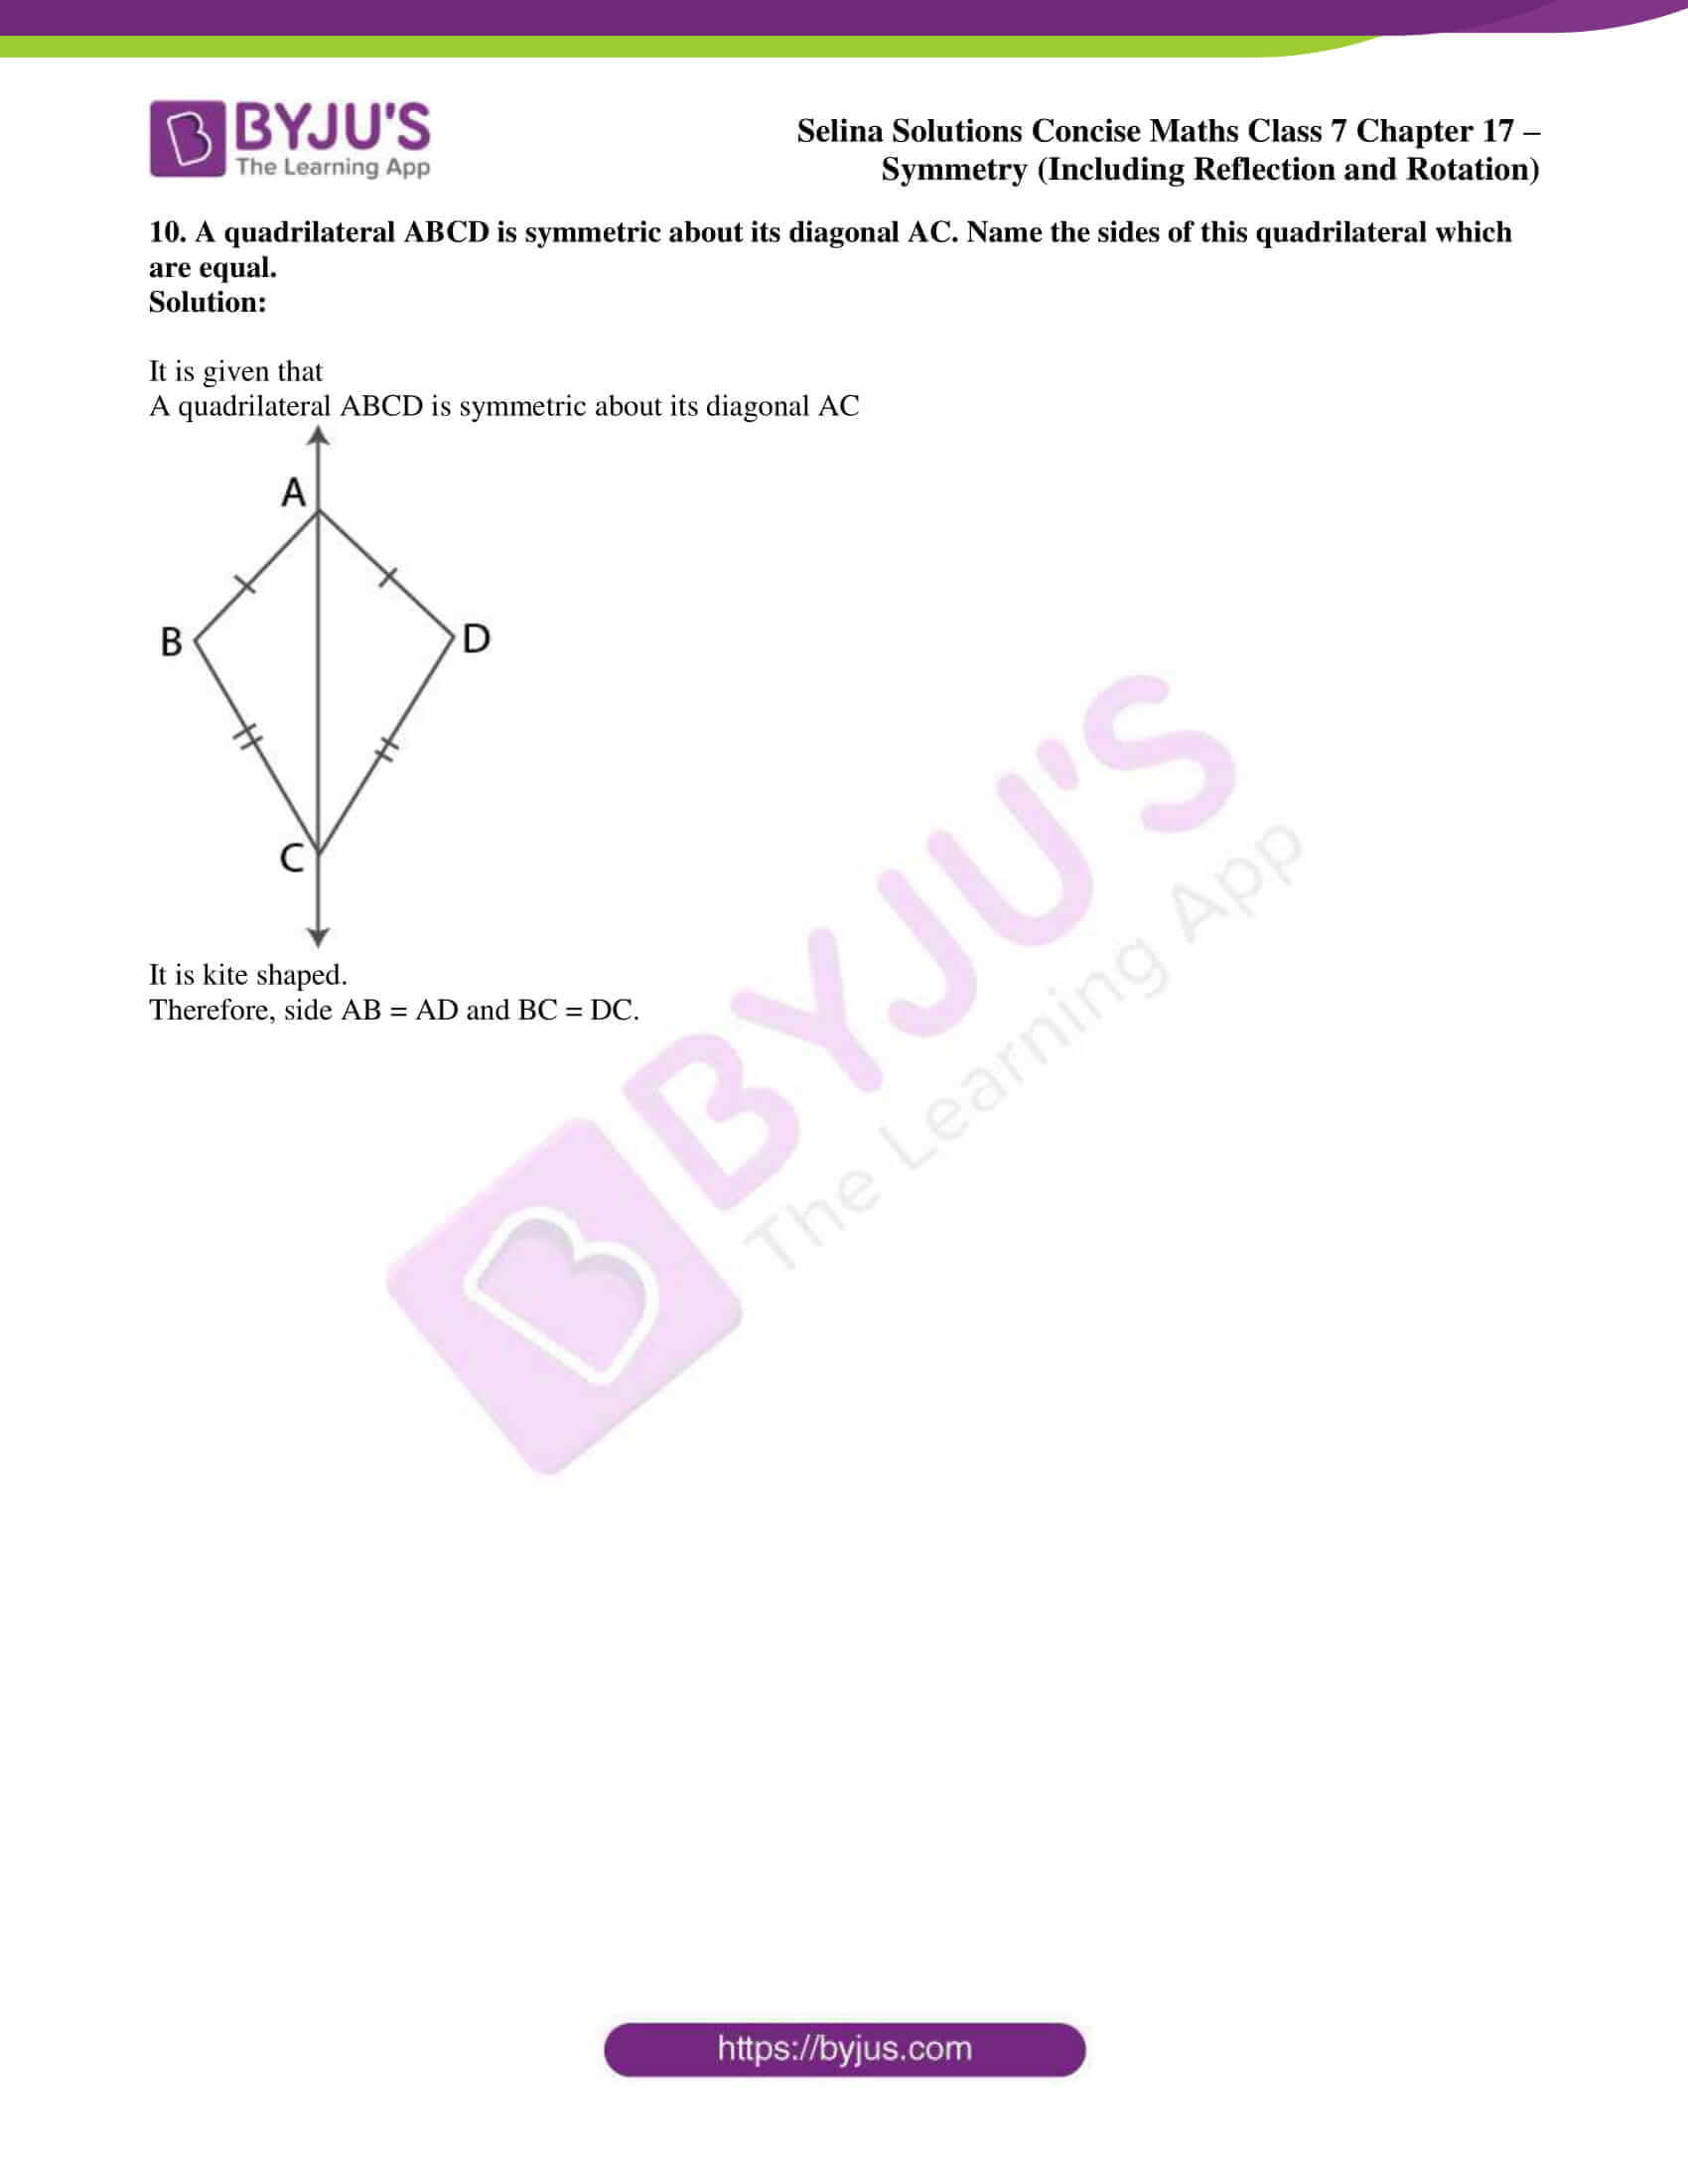 selina sol concise maths class 7 chapter 17 ex a 8